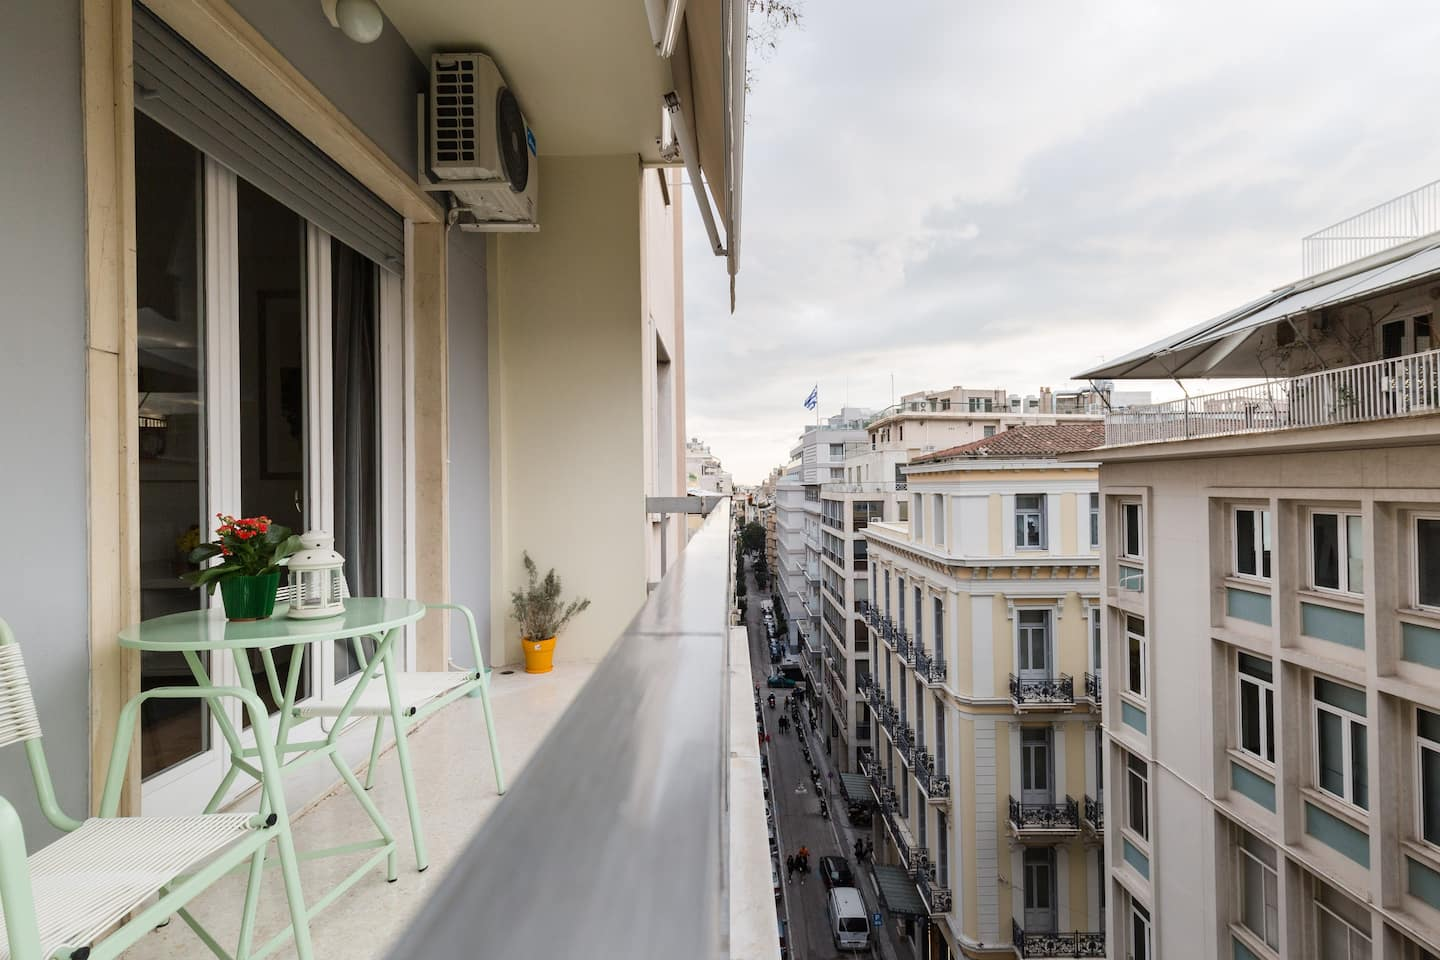 Image of Airbnb rental in Athens, Greece